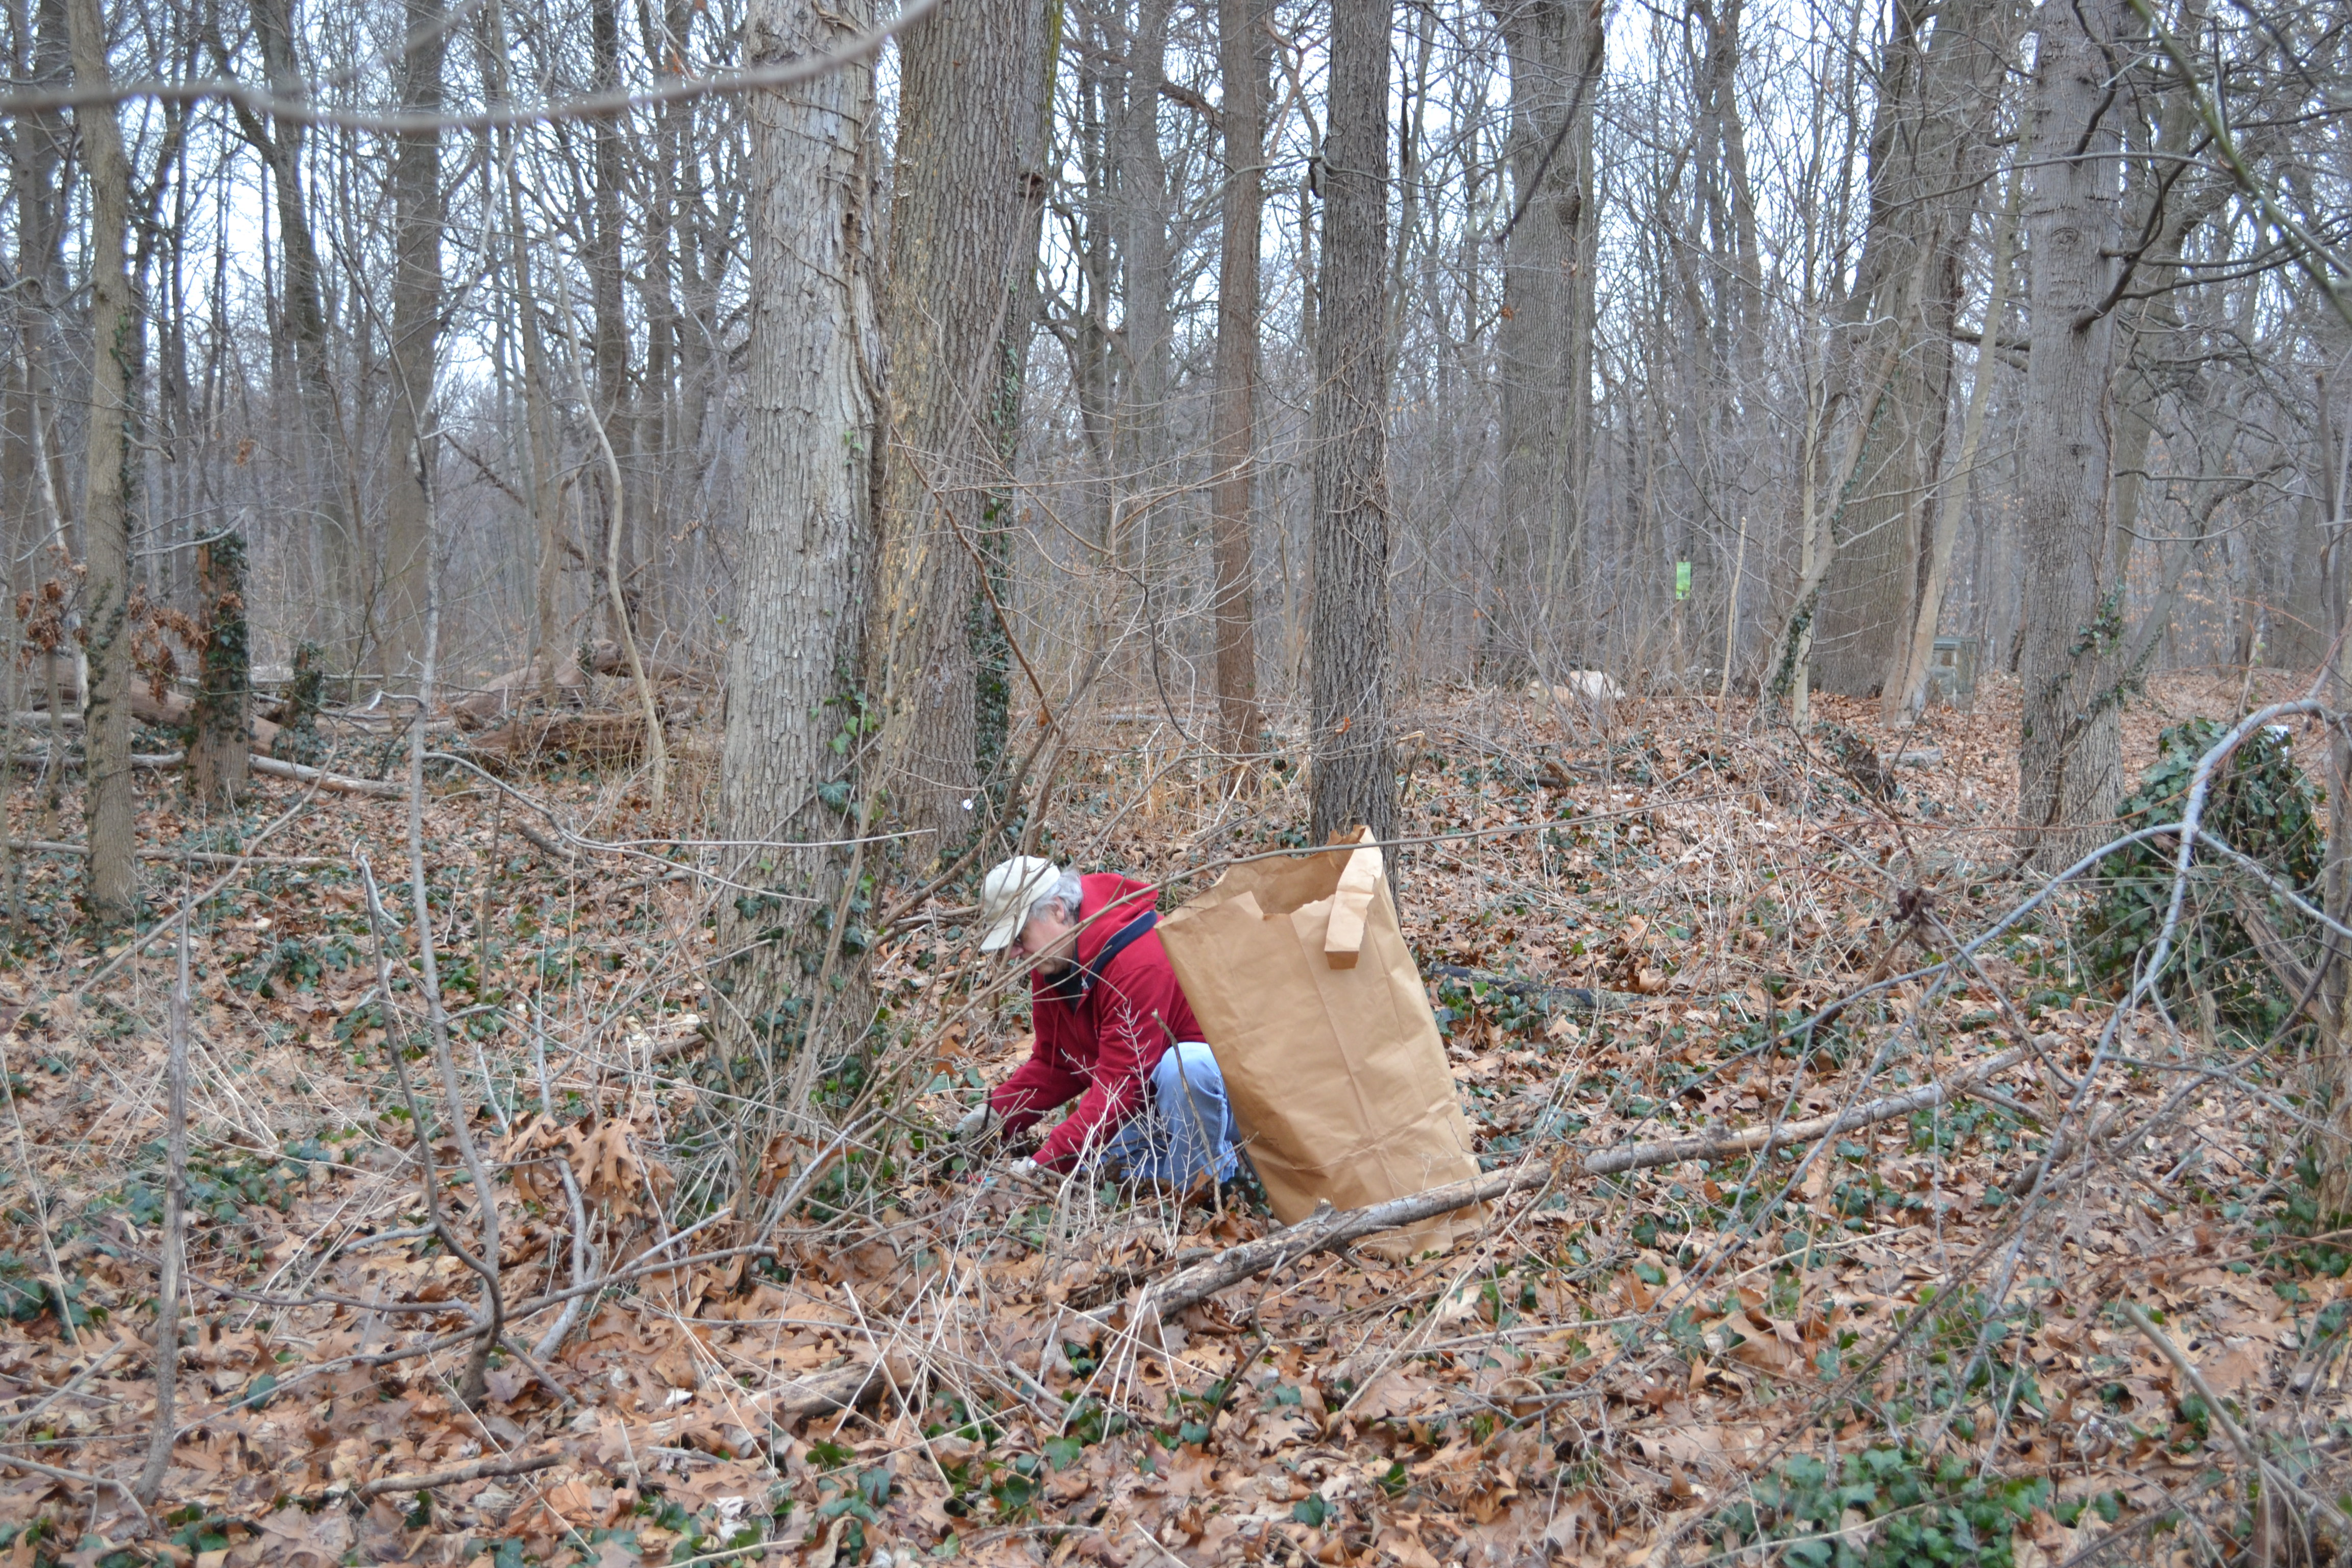 Friends of Carpenter's Woods cleanup